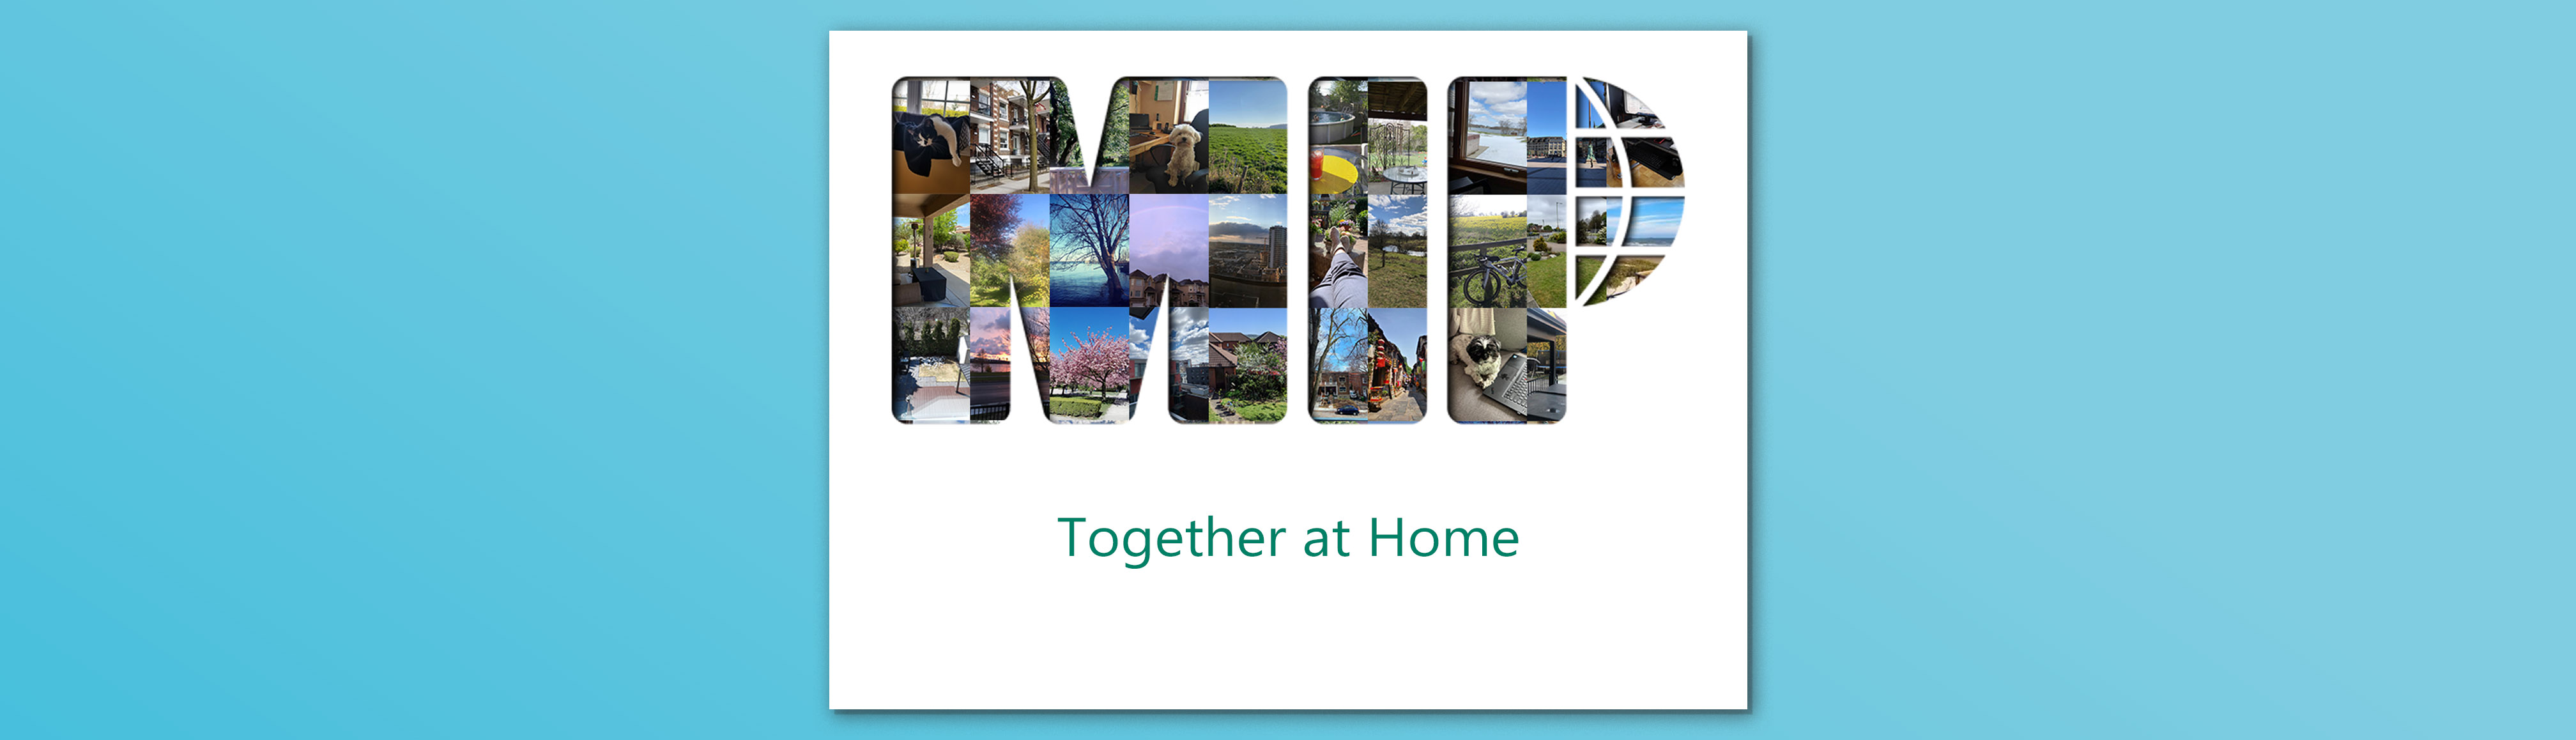 Together @ Home Banner